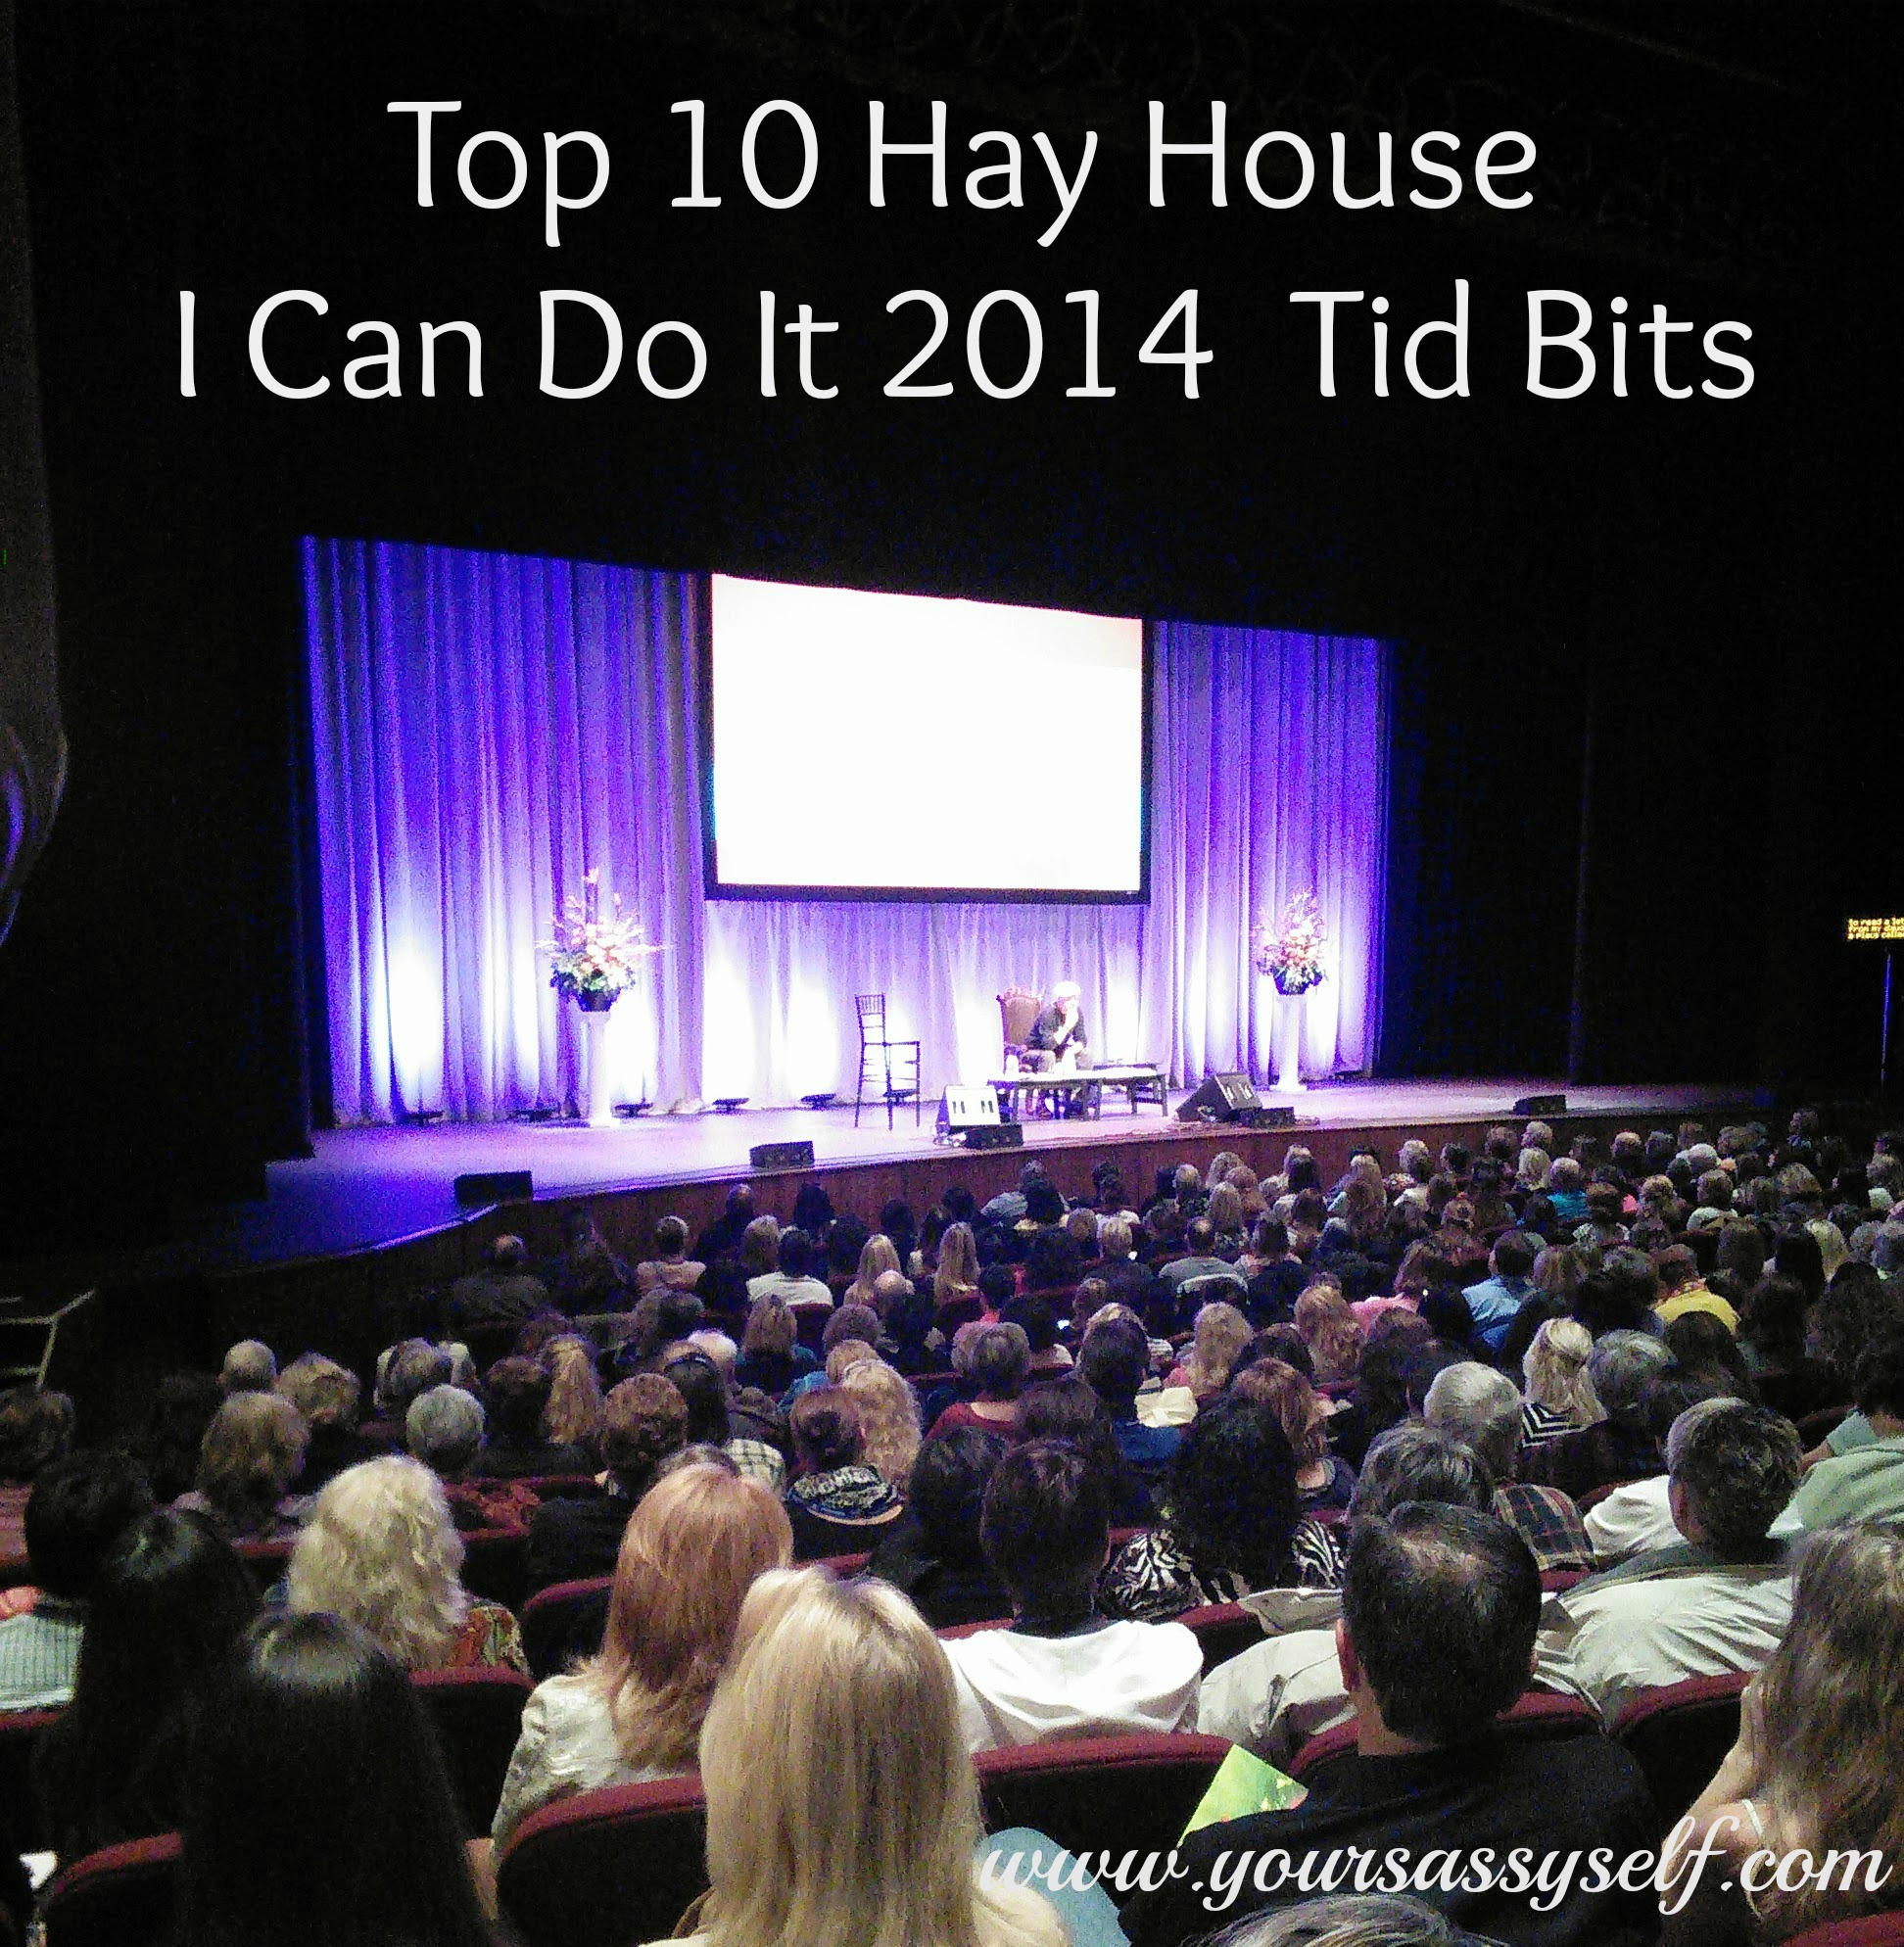 Top 10 Hay House I Can Do It 2014 Tid Bits